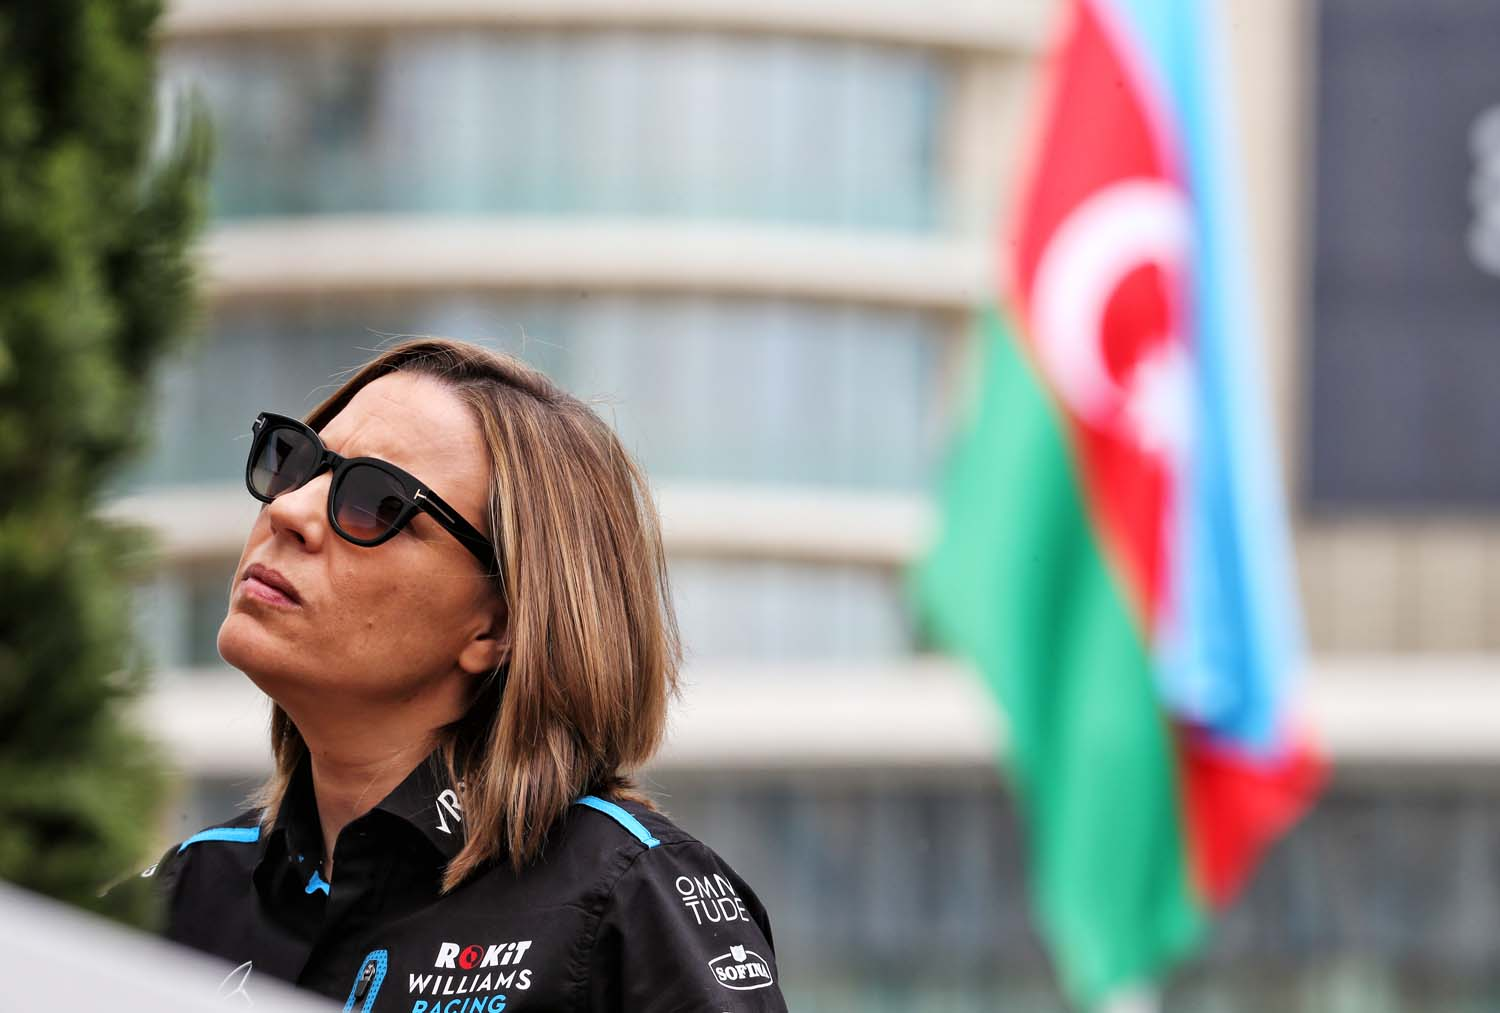 Motor Racing - Formula One World Championship - Azerbaijan Grand Prix - Preparation Day - Baku, Azerbaijan